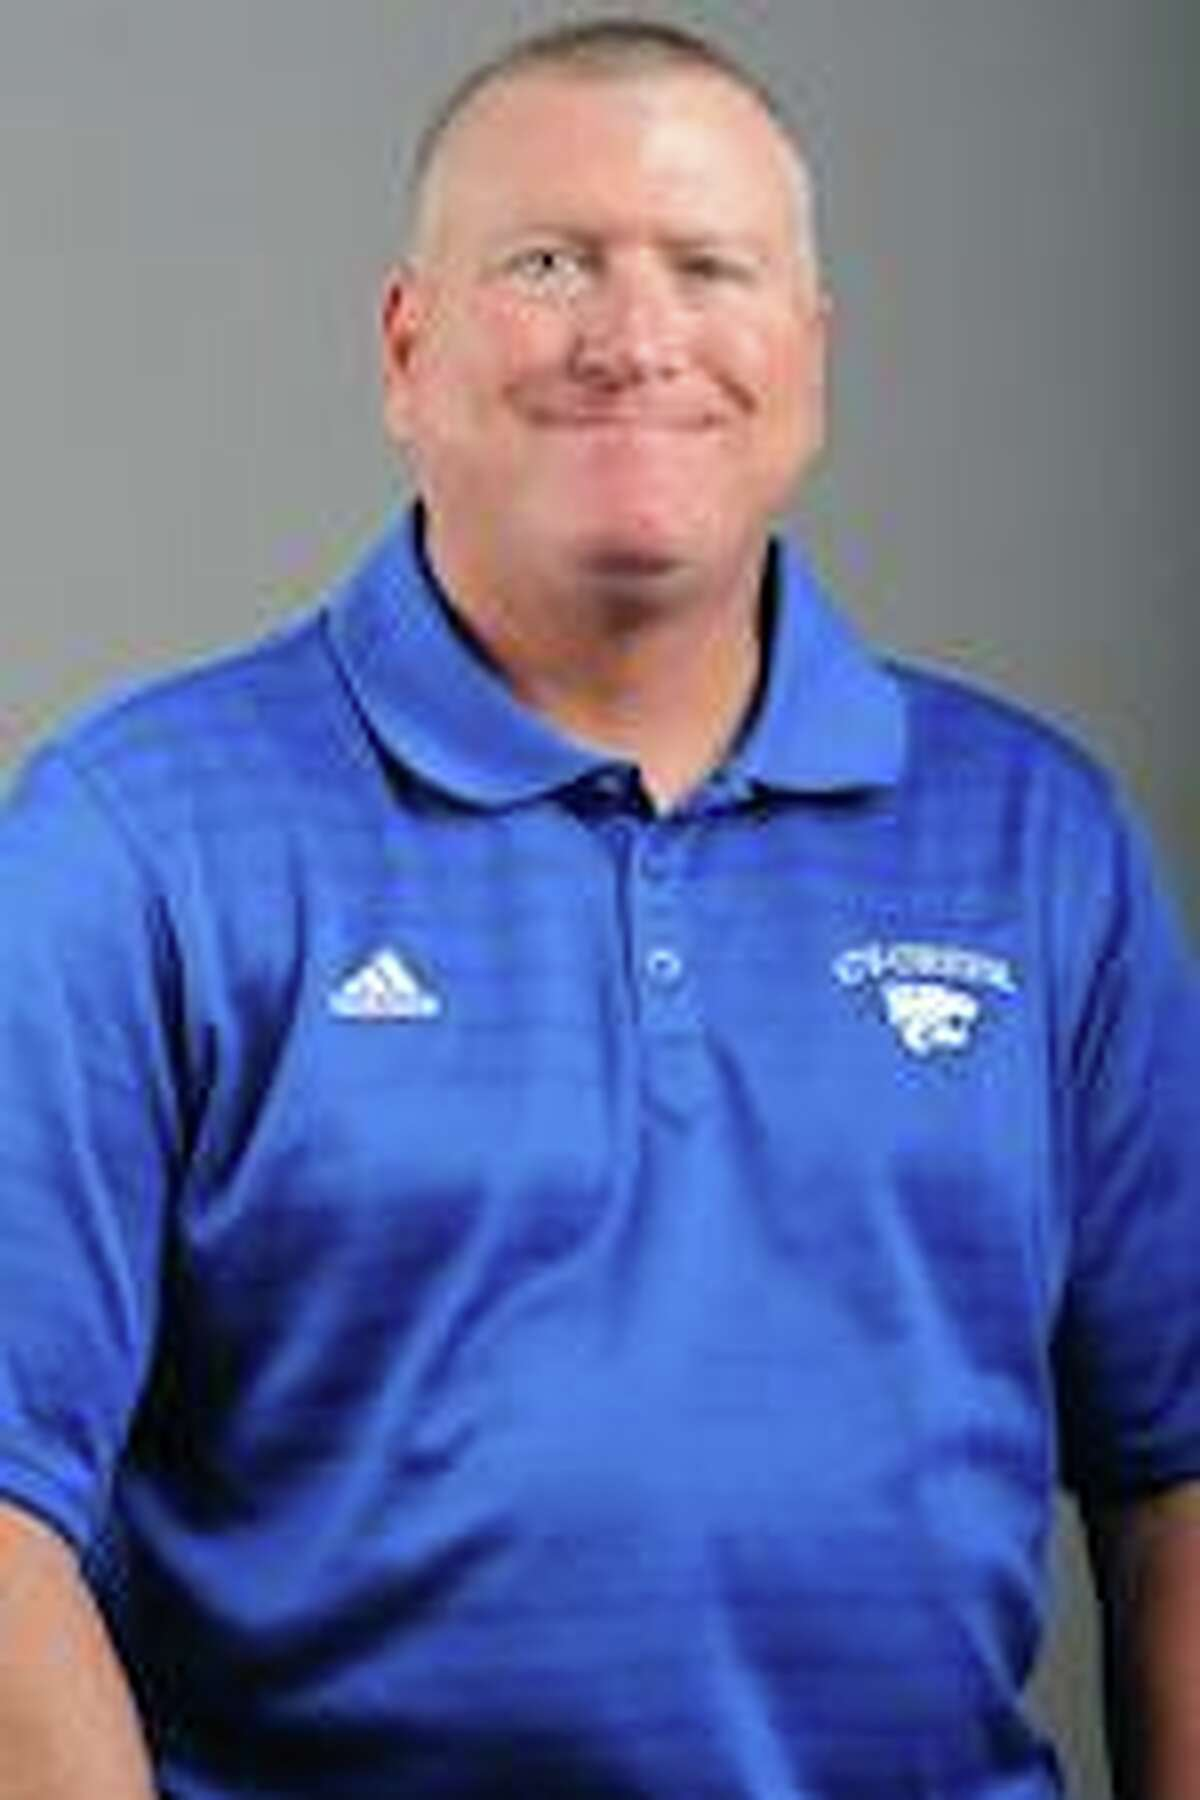 Trent Faith was announced as the new football head coach at Cypress Woods in 2012. He previously spent the last decade as Cy Creek's defensive coordinator.